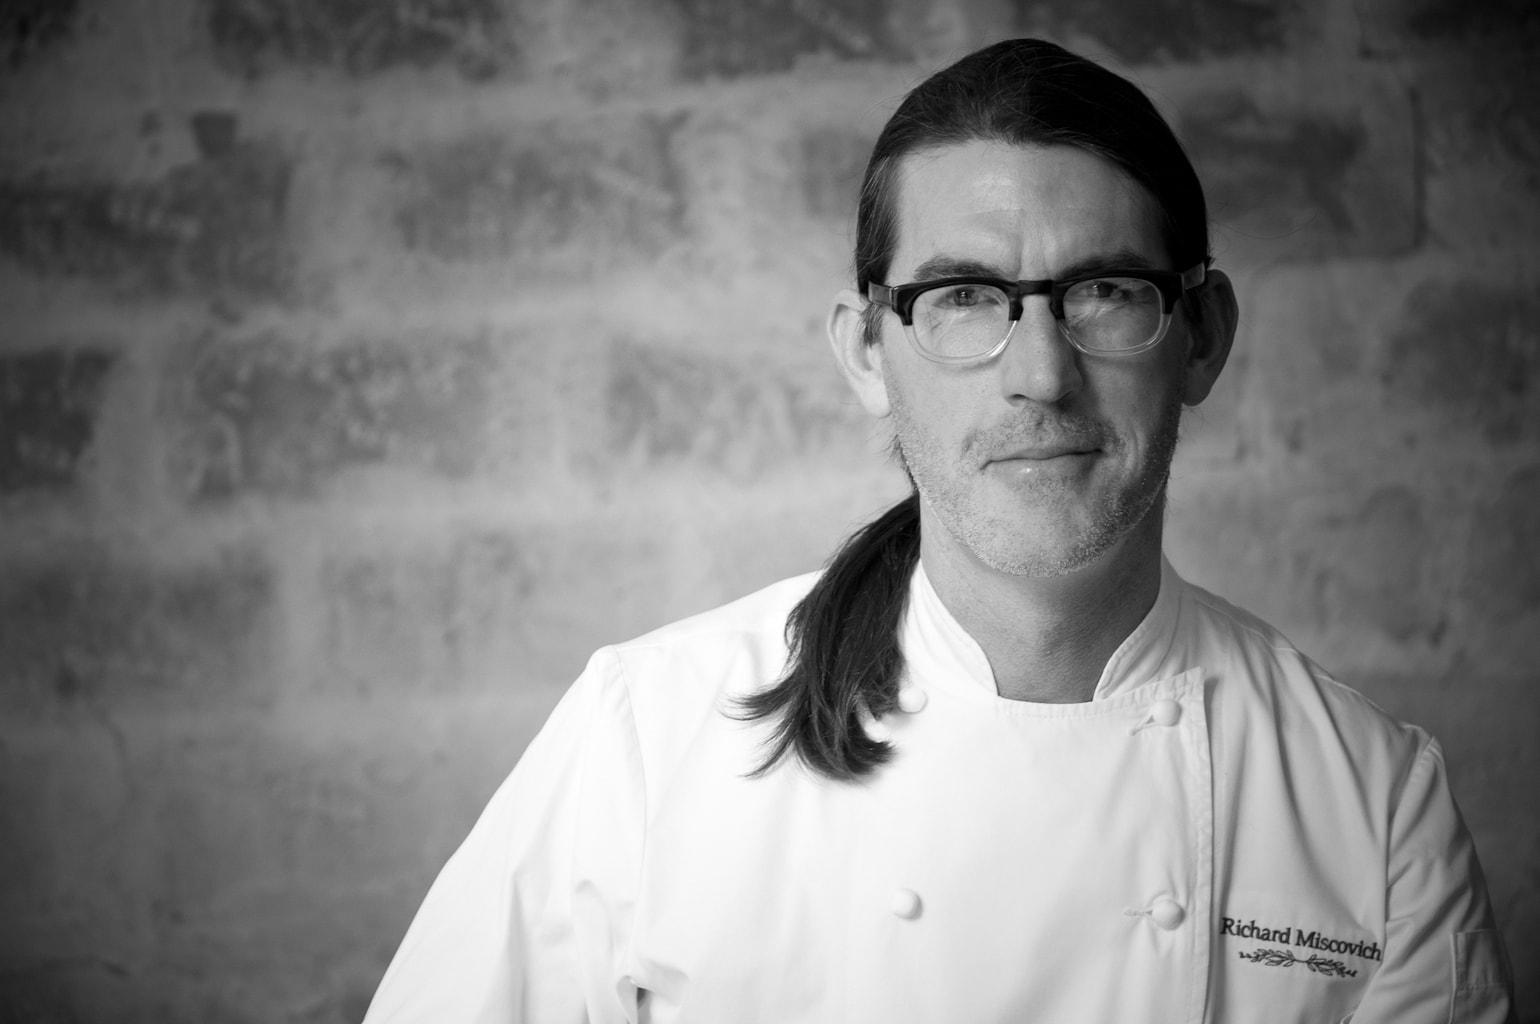 Chef Richard Miscovich